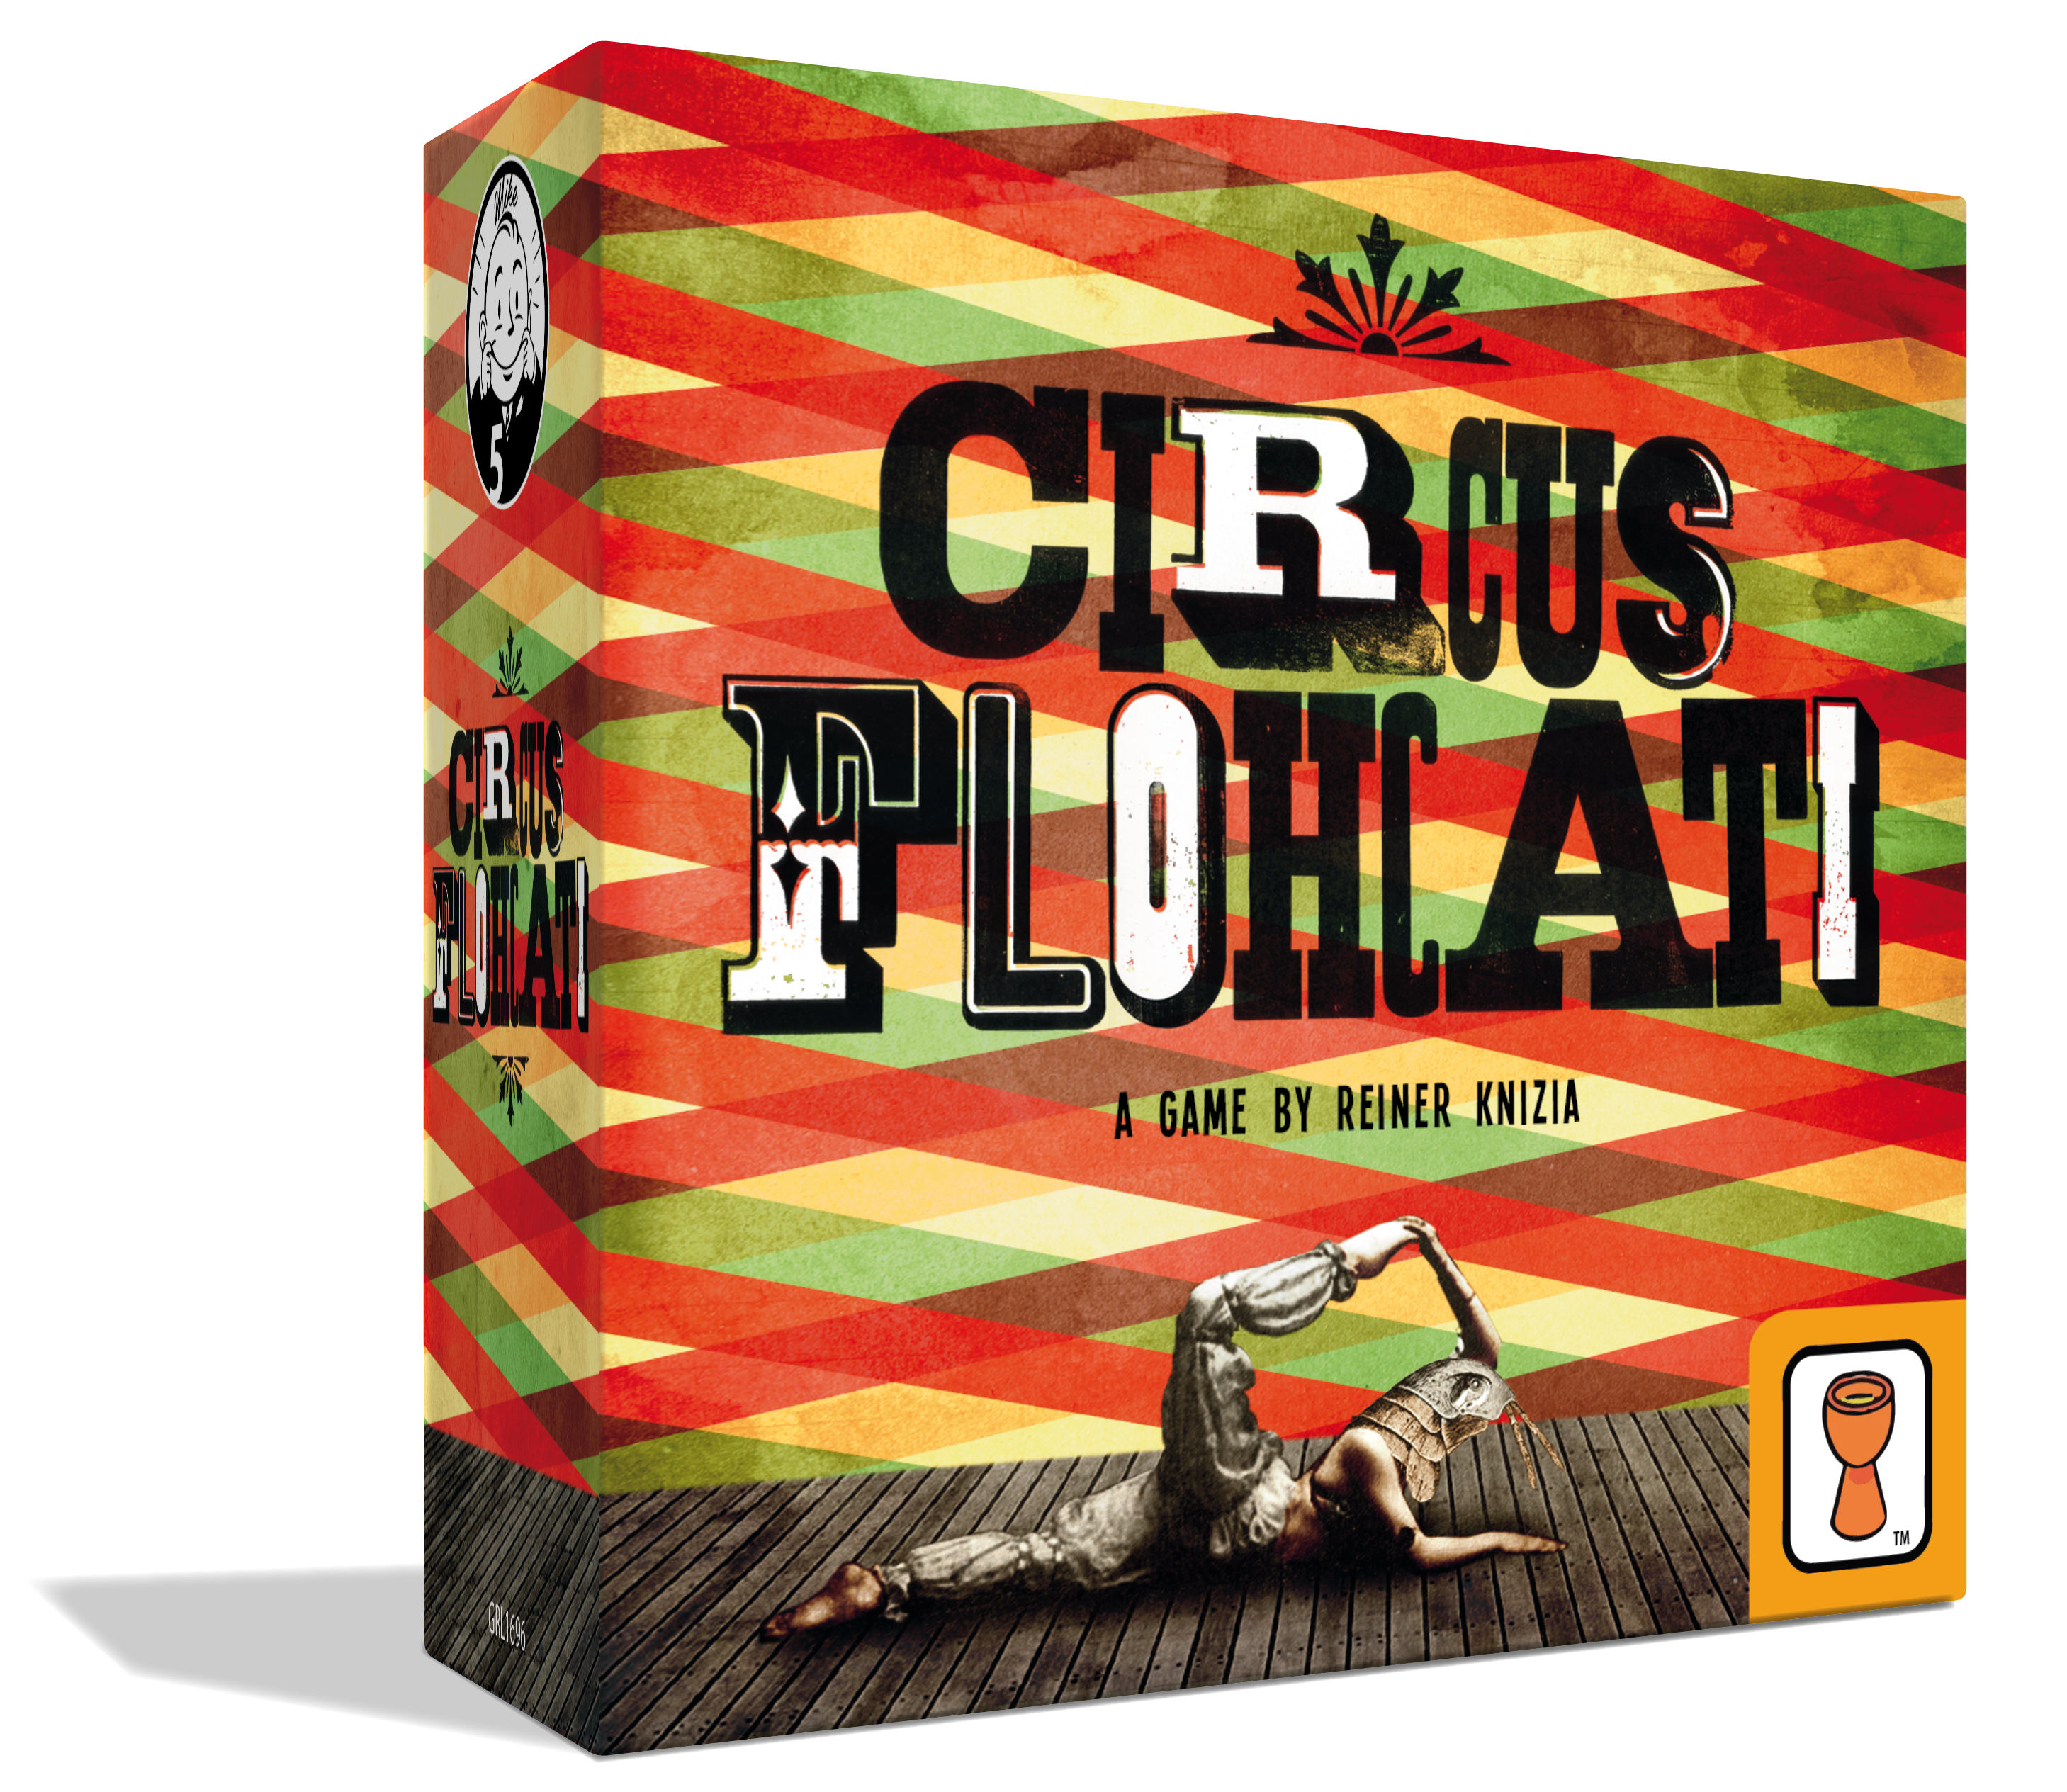 Circus flohcati grail games. Gaming clipart game booth